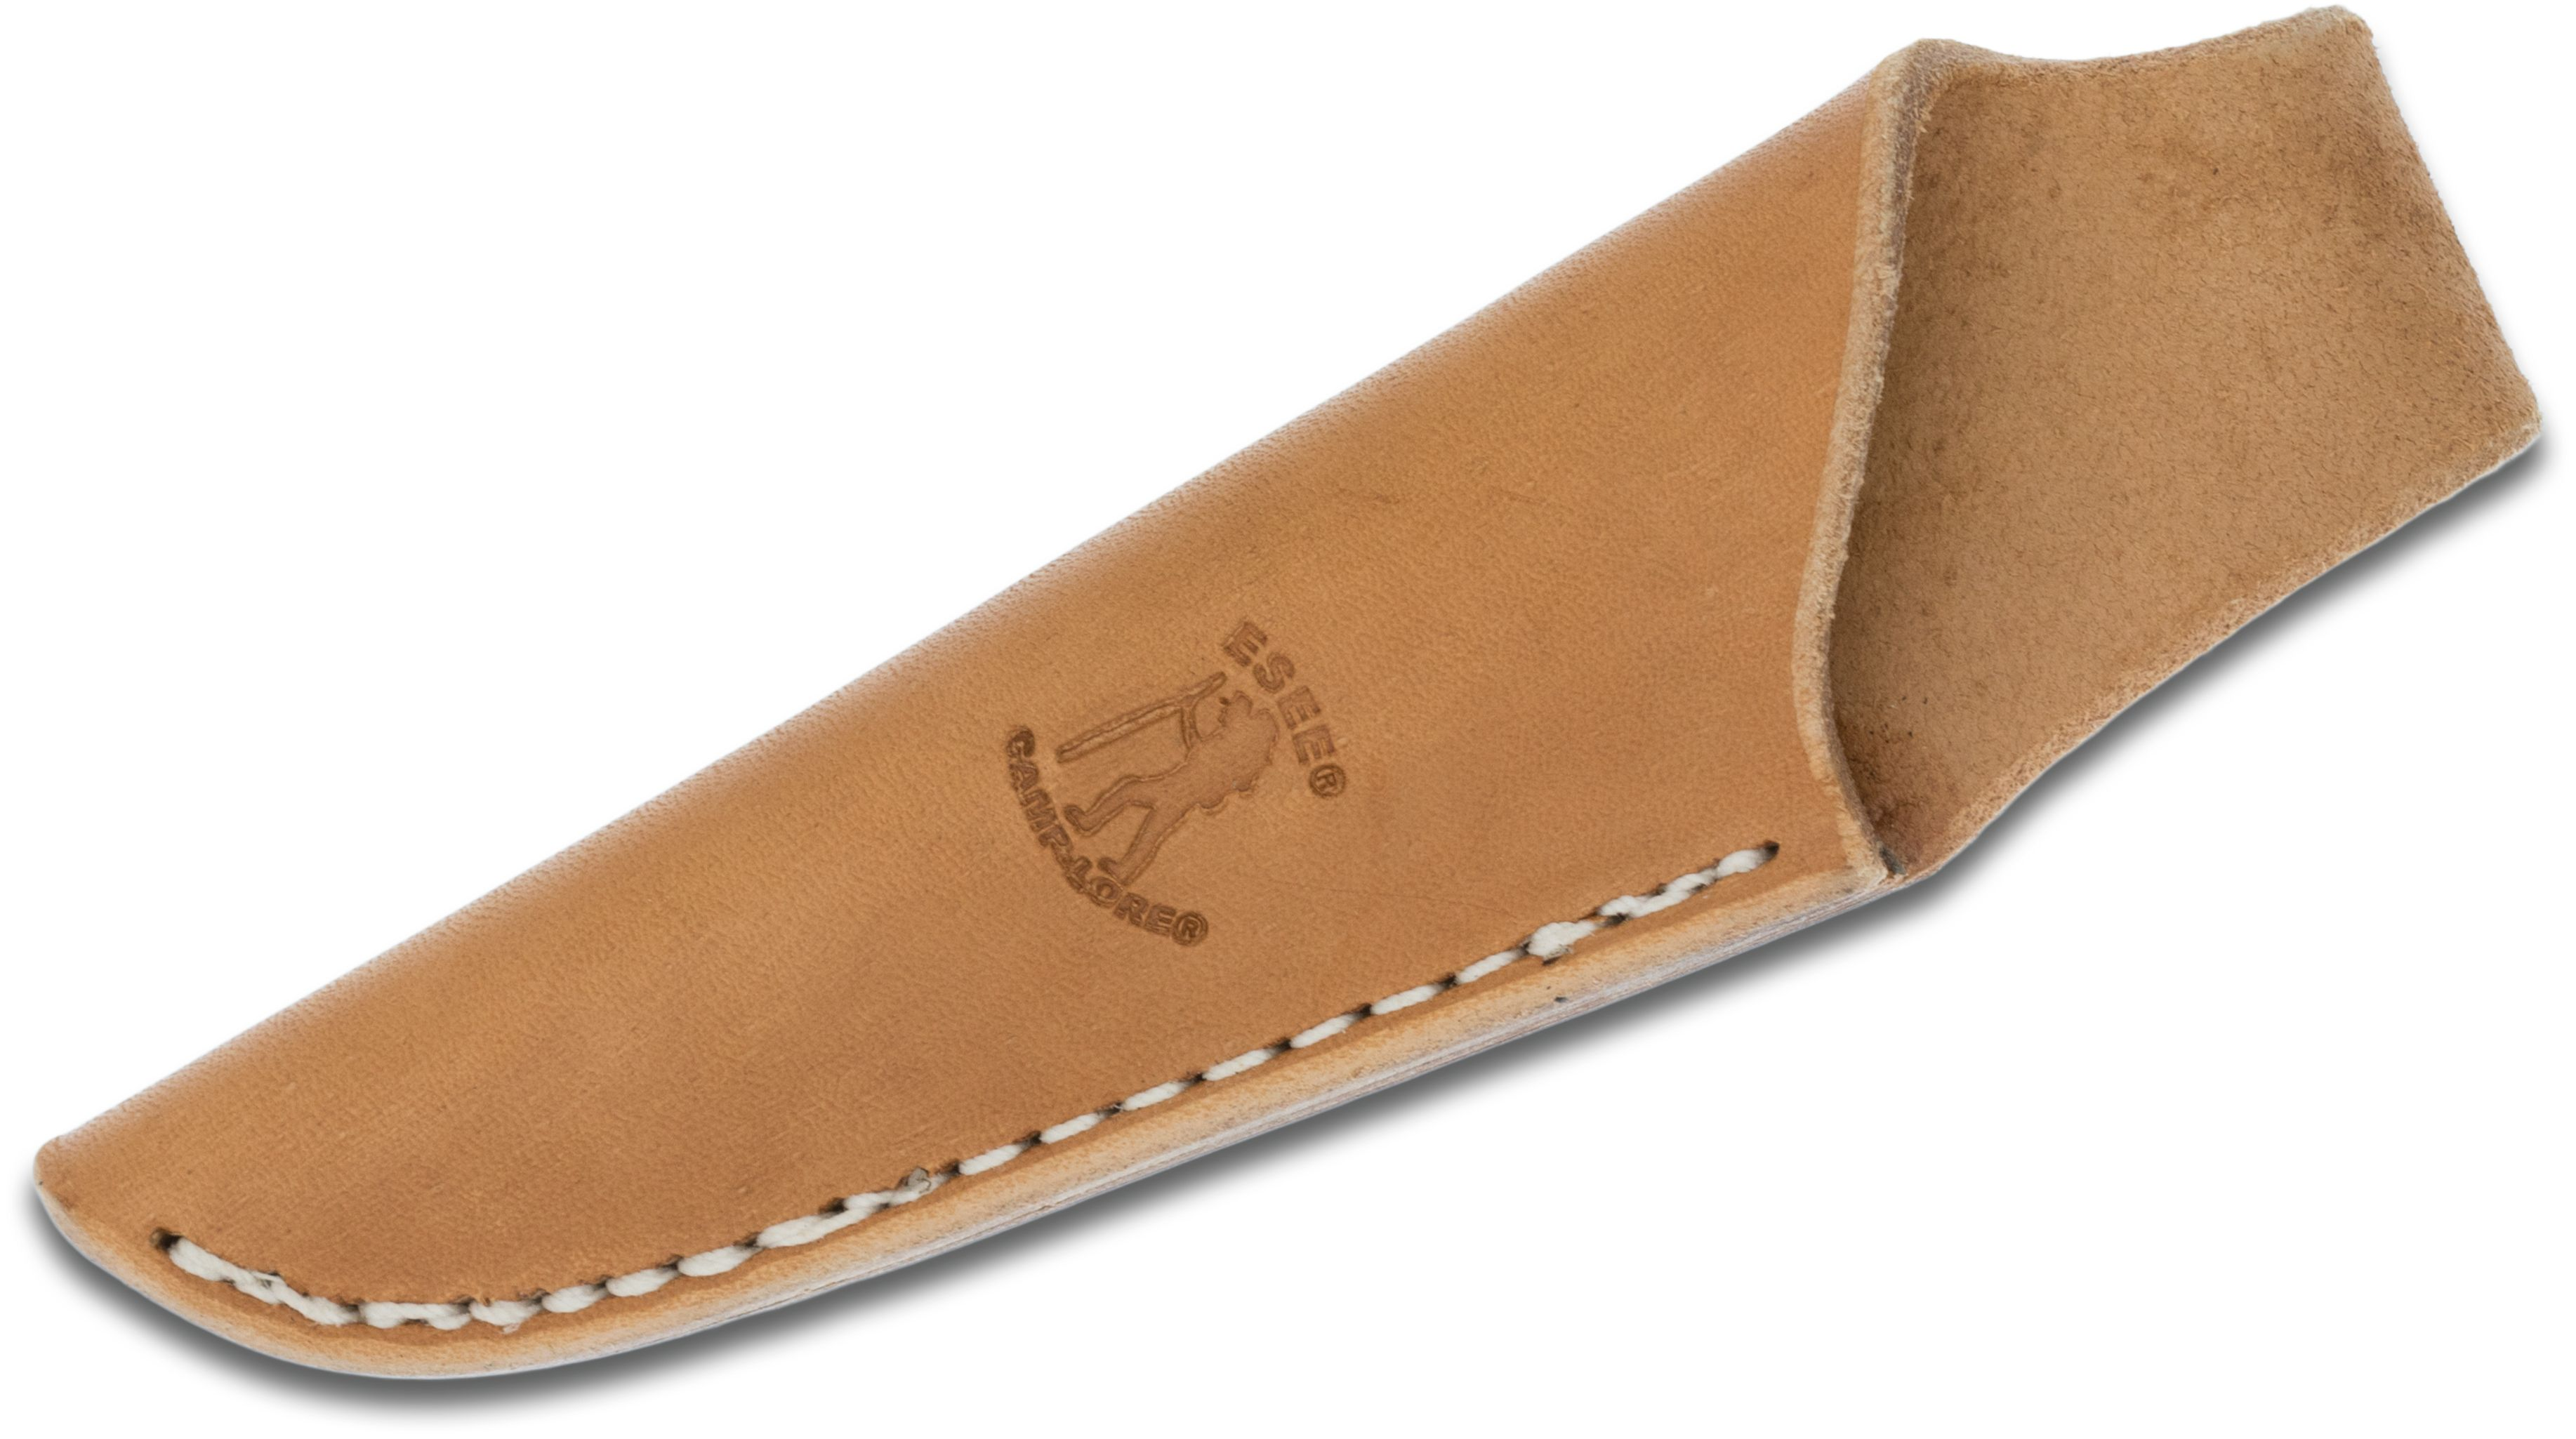 ESEE Knives Camp-Lore Cody Rowen CR2.5 Leather Sheath, Tan, Embossed Logo, Left-Handed